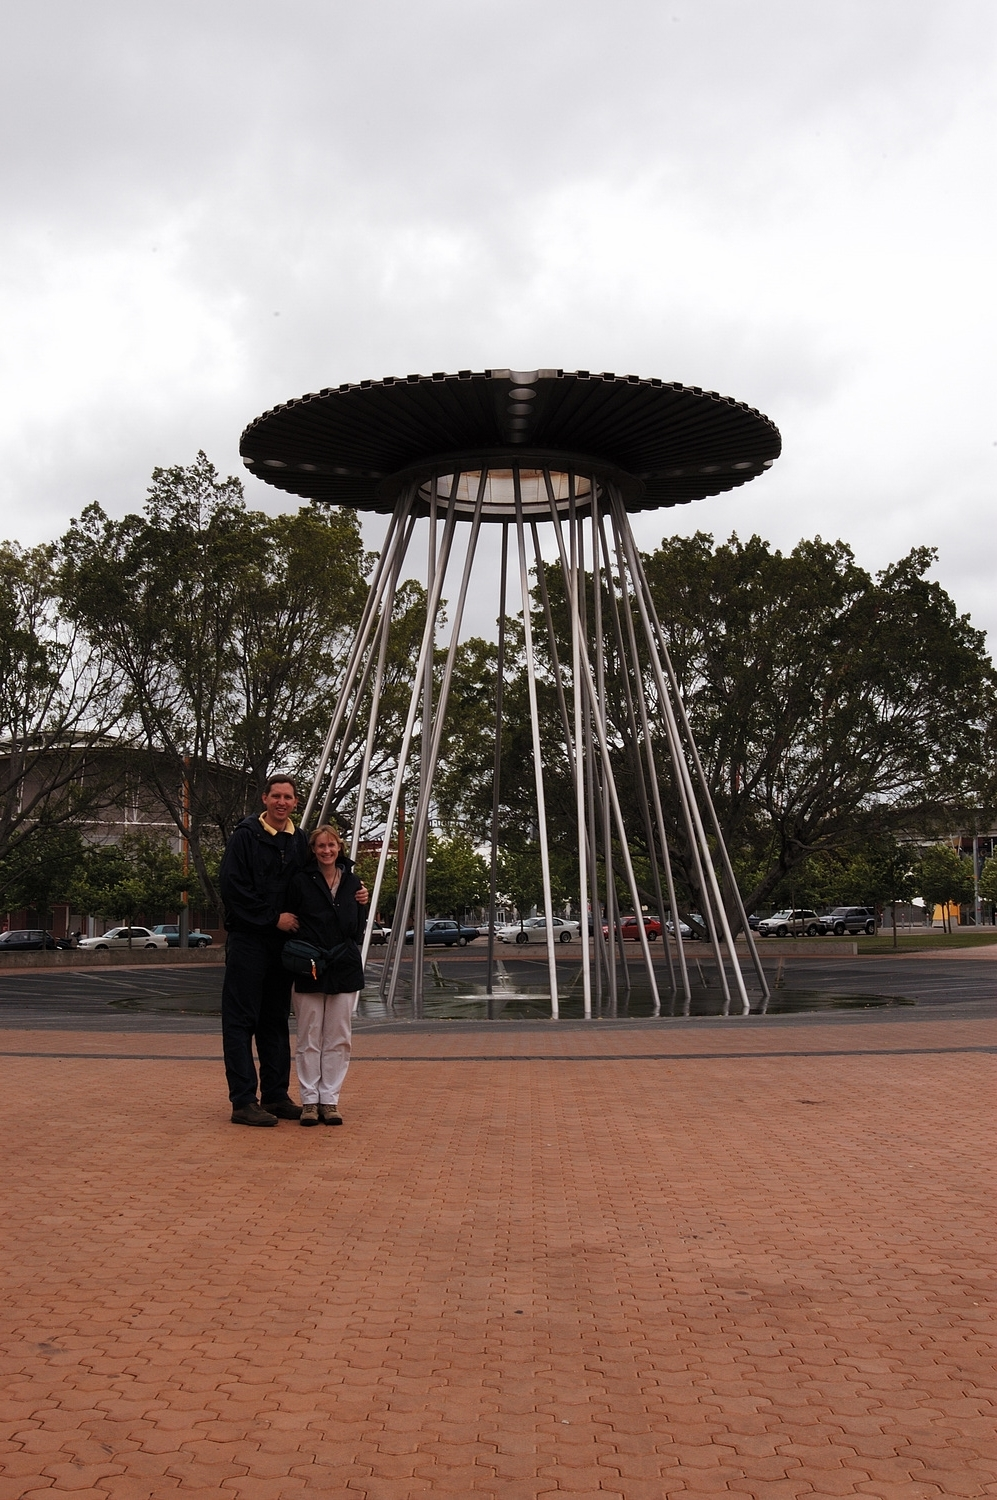 Sydney Olympic Park Olympic Cauldron for the Sydney 2000 Olympics in the Cathy Freeman Park